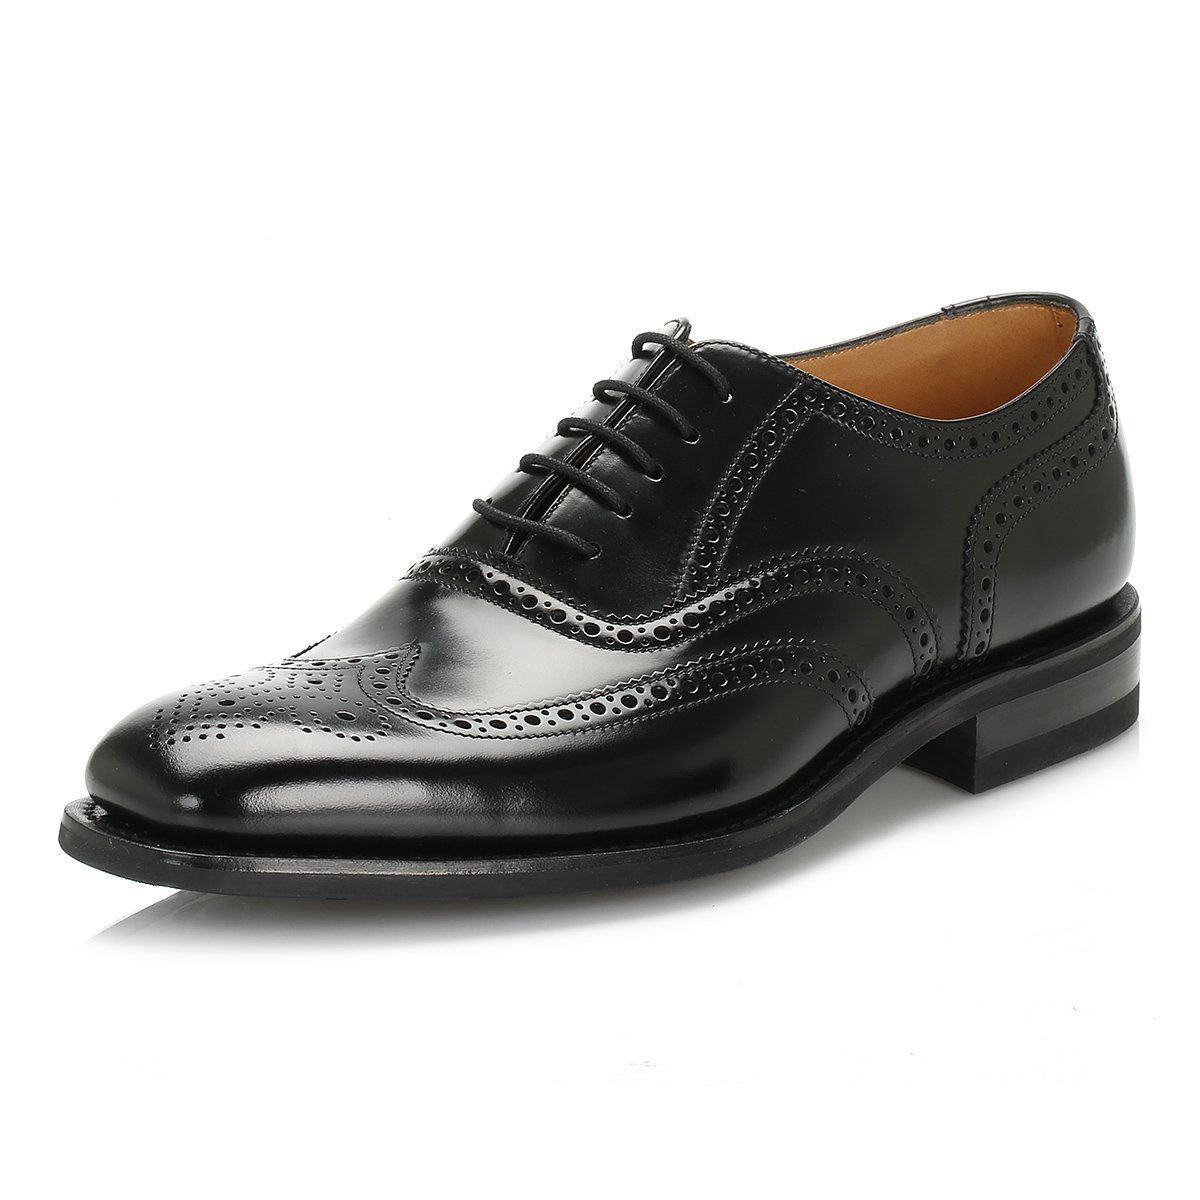 Loake Legend Herren Schwarz 262B Legend Loake Polished Leder Brogue Schuhe 06d574